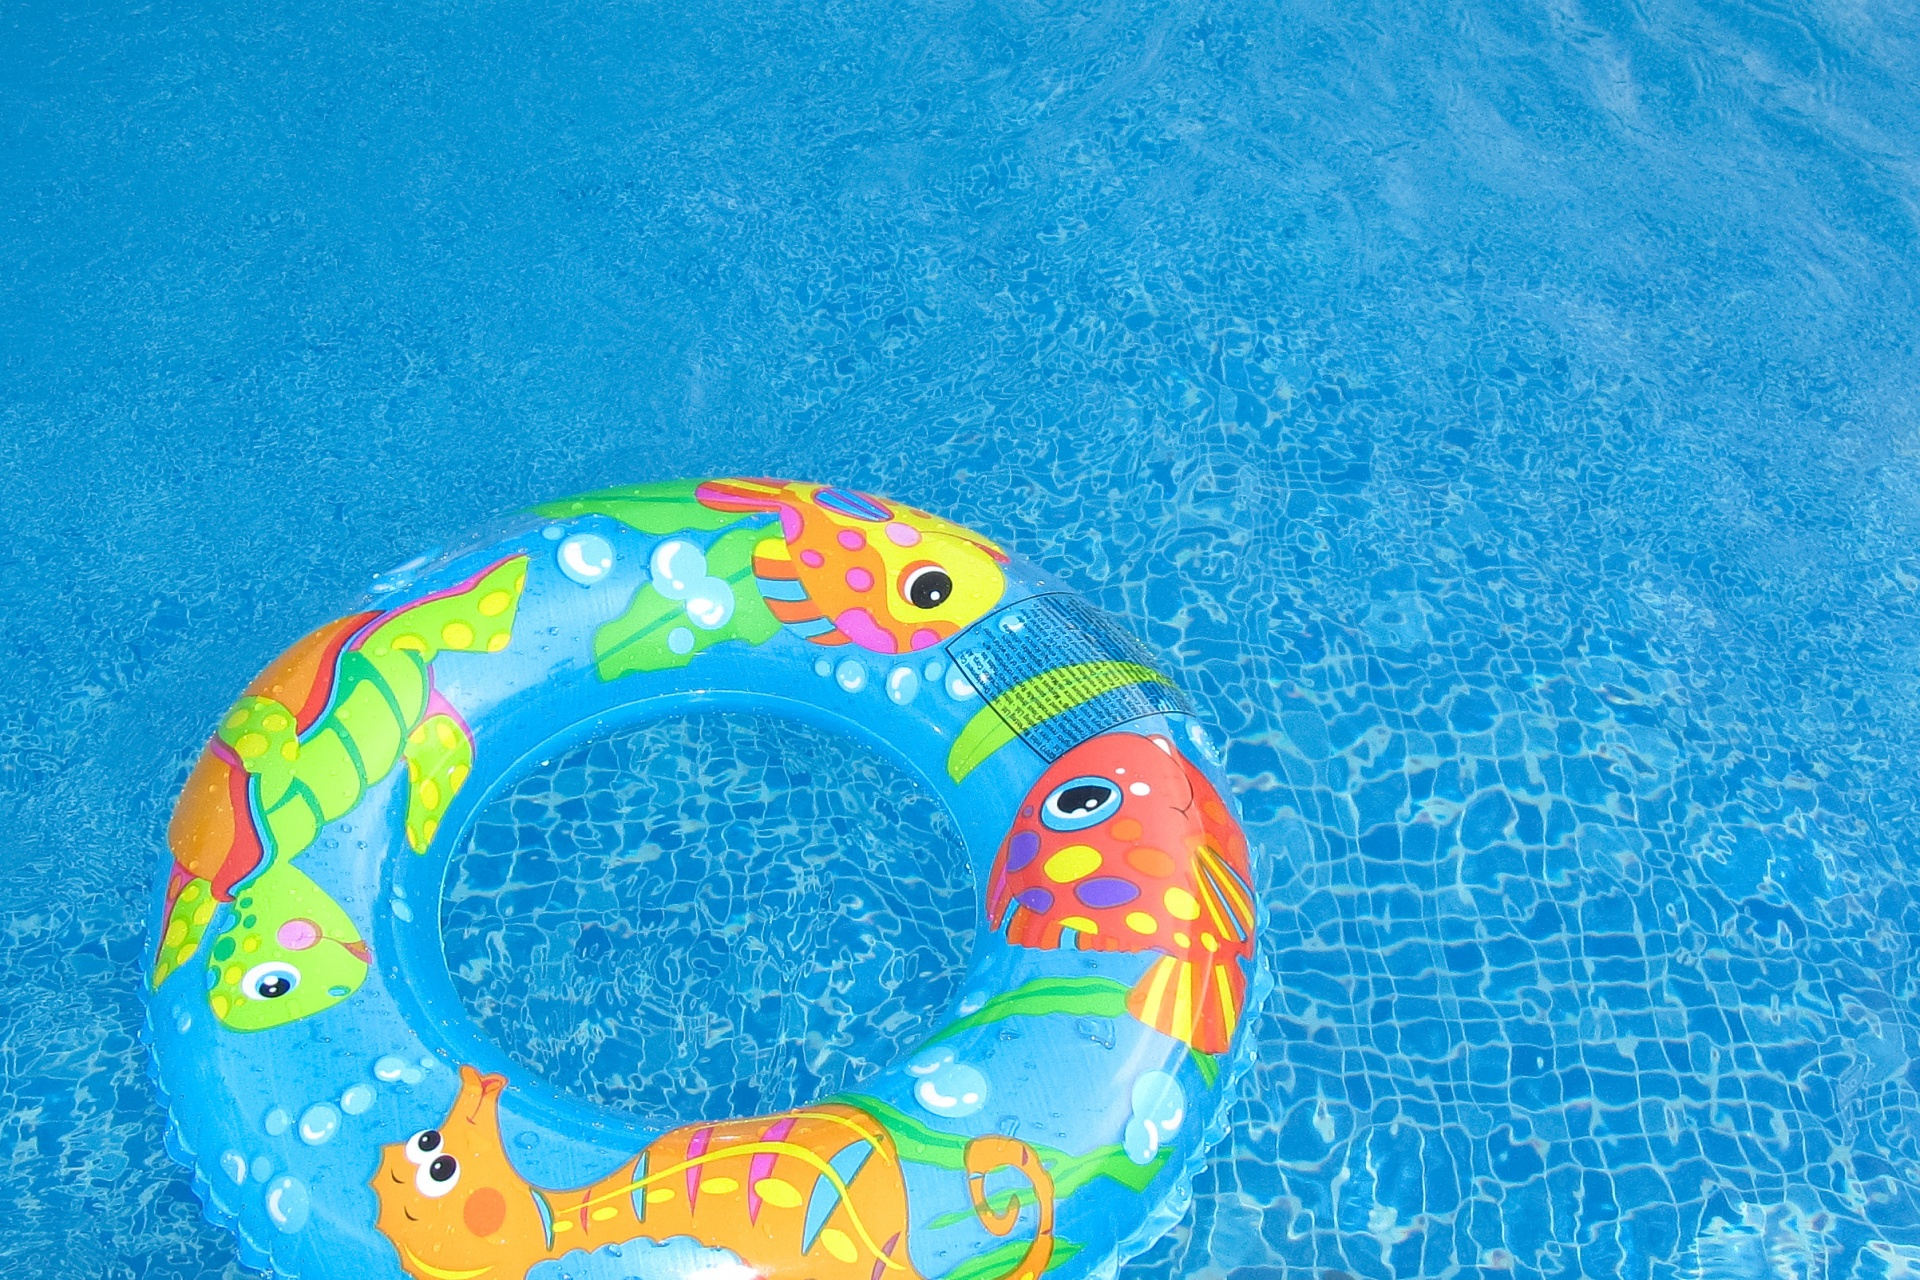 swim-ring-in-a-pool-1442997122WLk